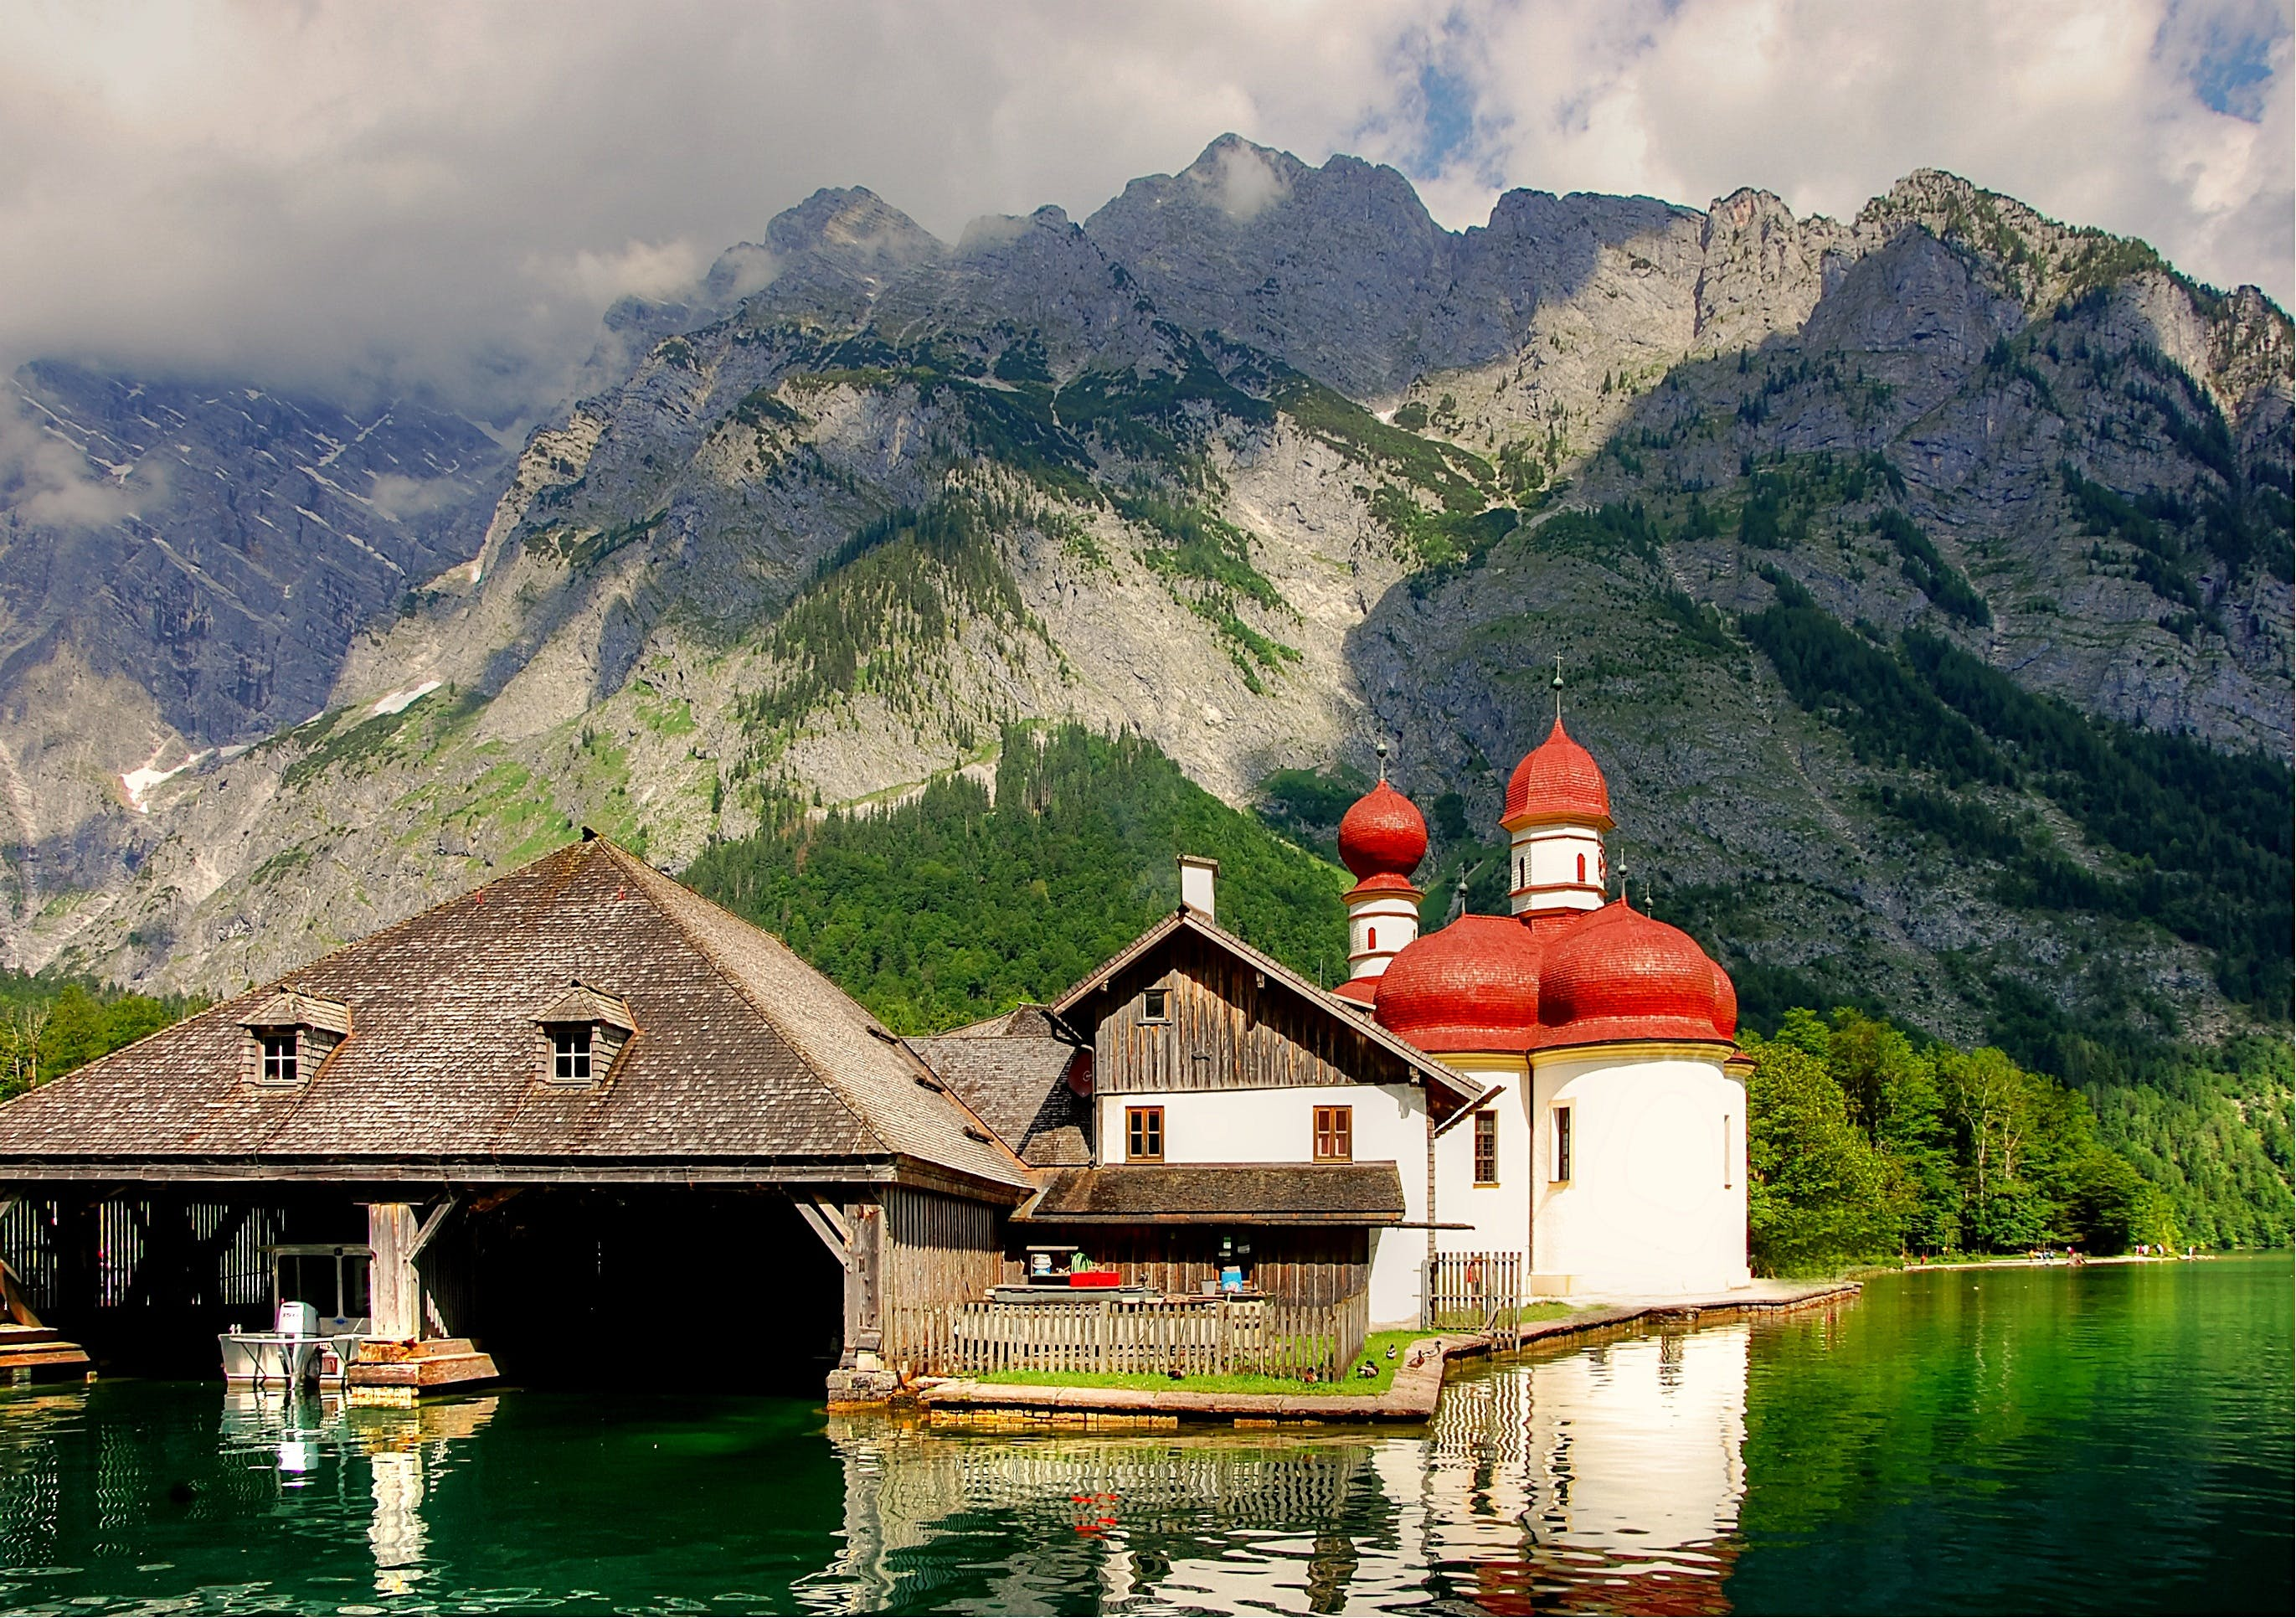 White, Red, and Brown House Beside Body Water Near Mountain